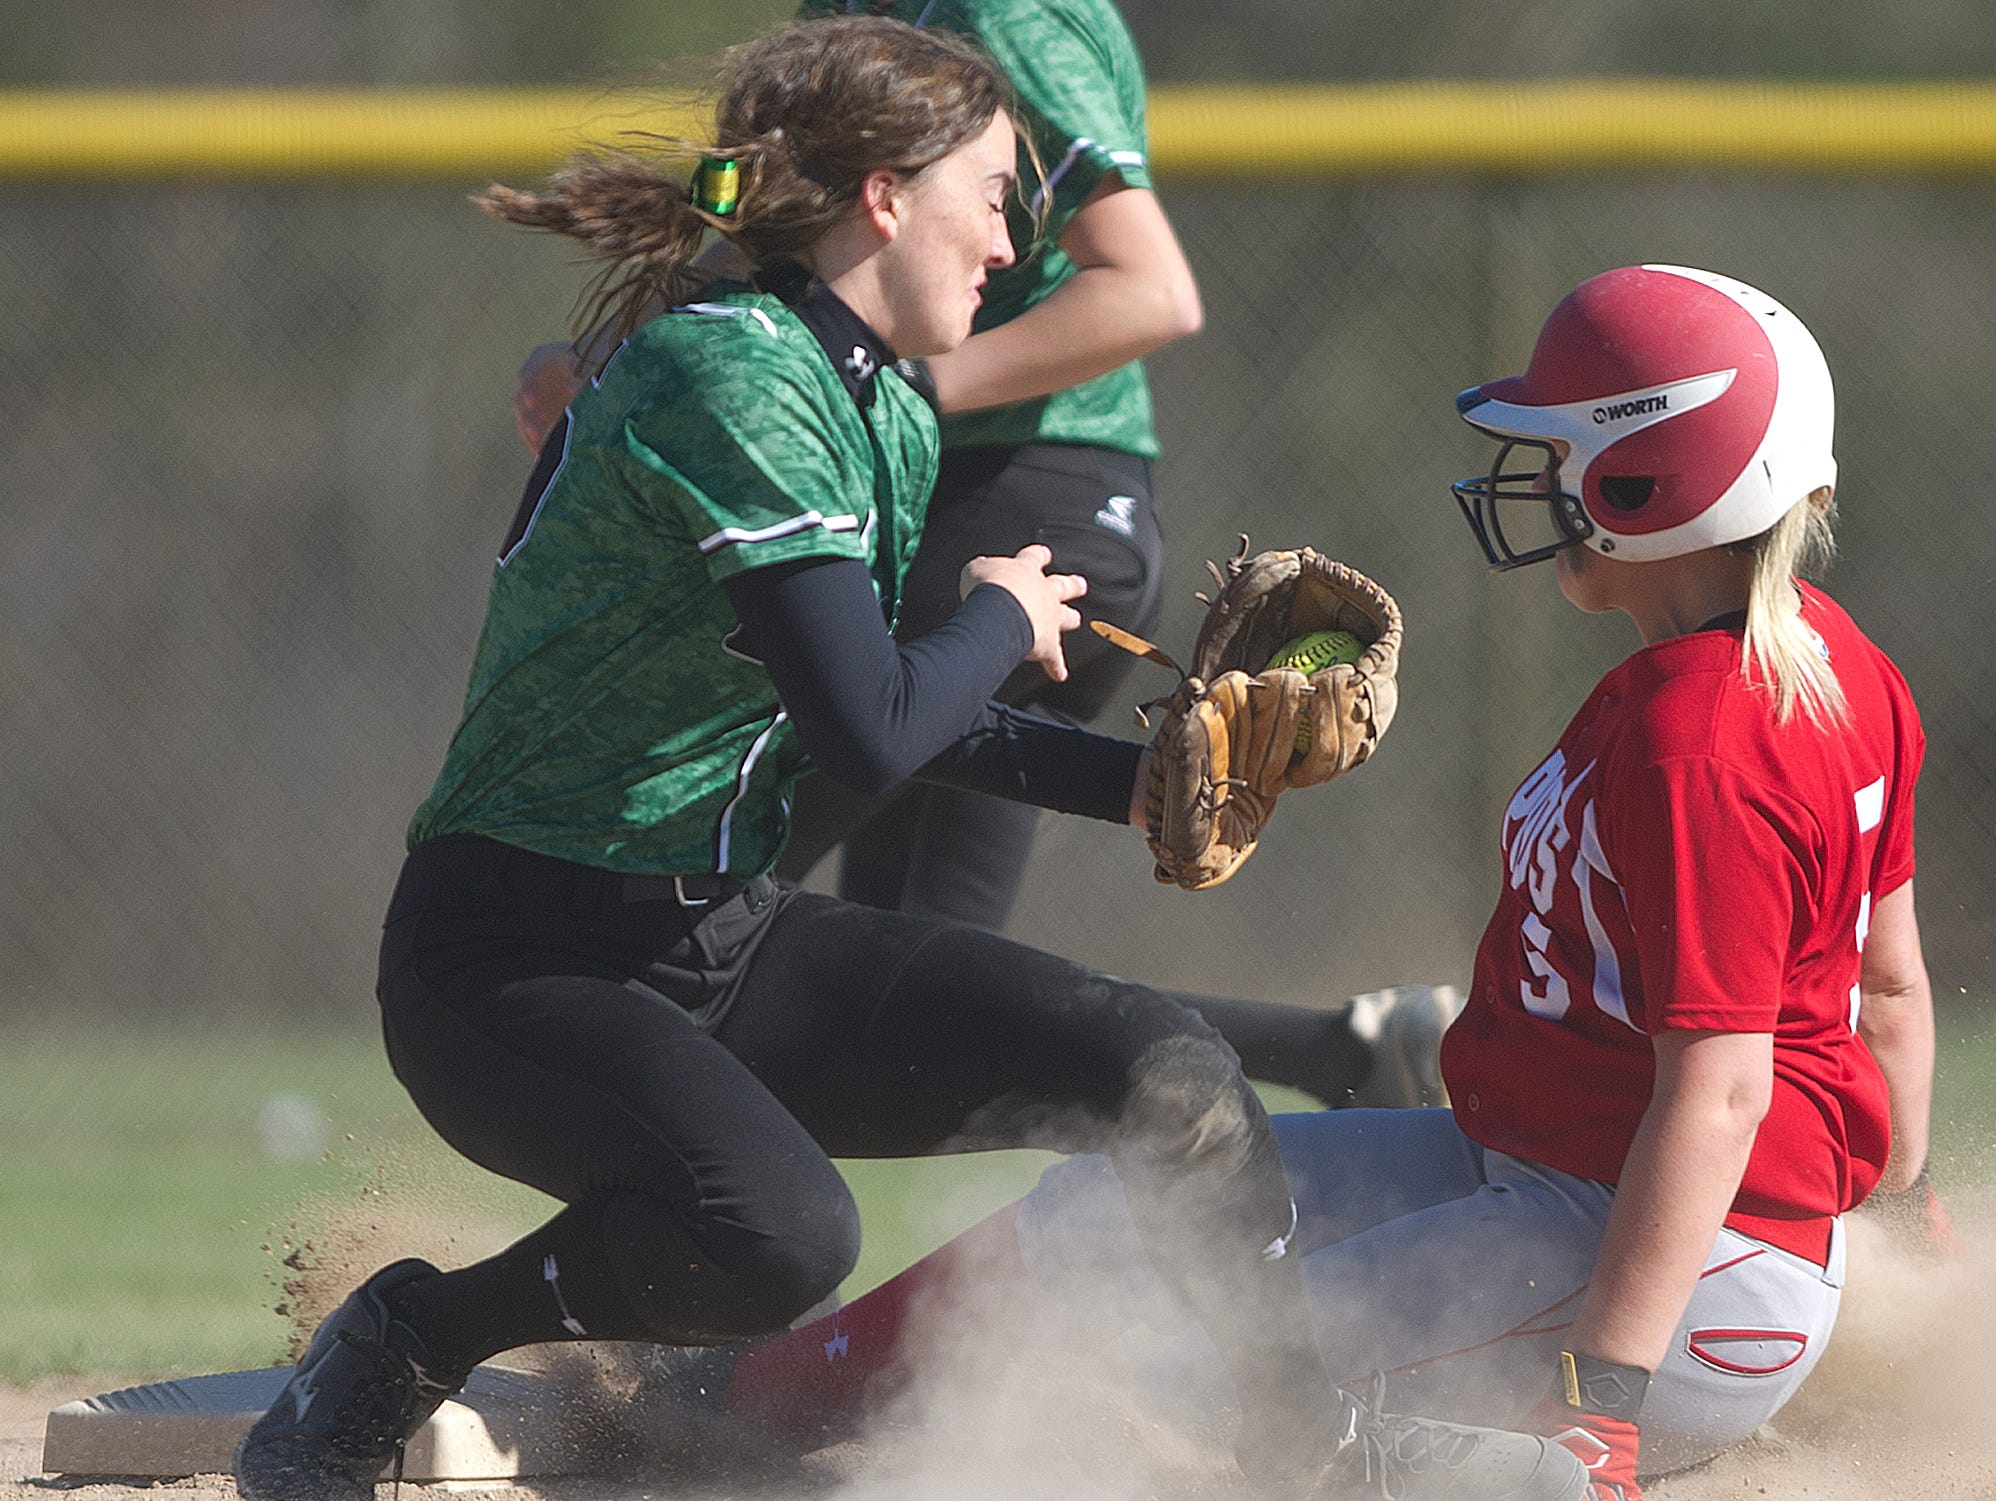 D.C. Everest's Ally Dzurka, left, tries to tag out Wisconsin Rapids' Madison Bogie during a Wisconsin Valley Conference softball game Thursday at Lincoln High School in Wisconsin Rapids.